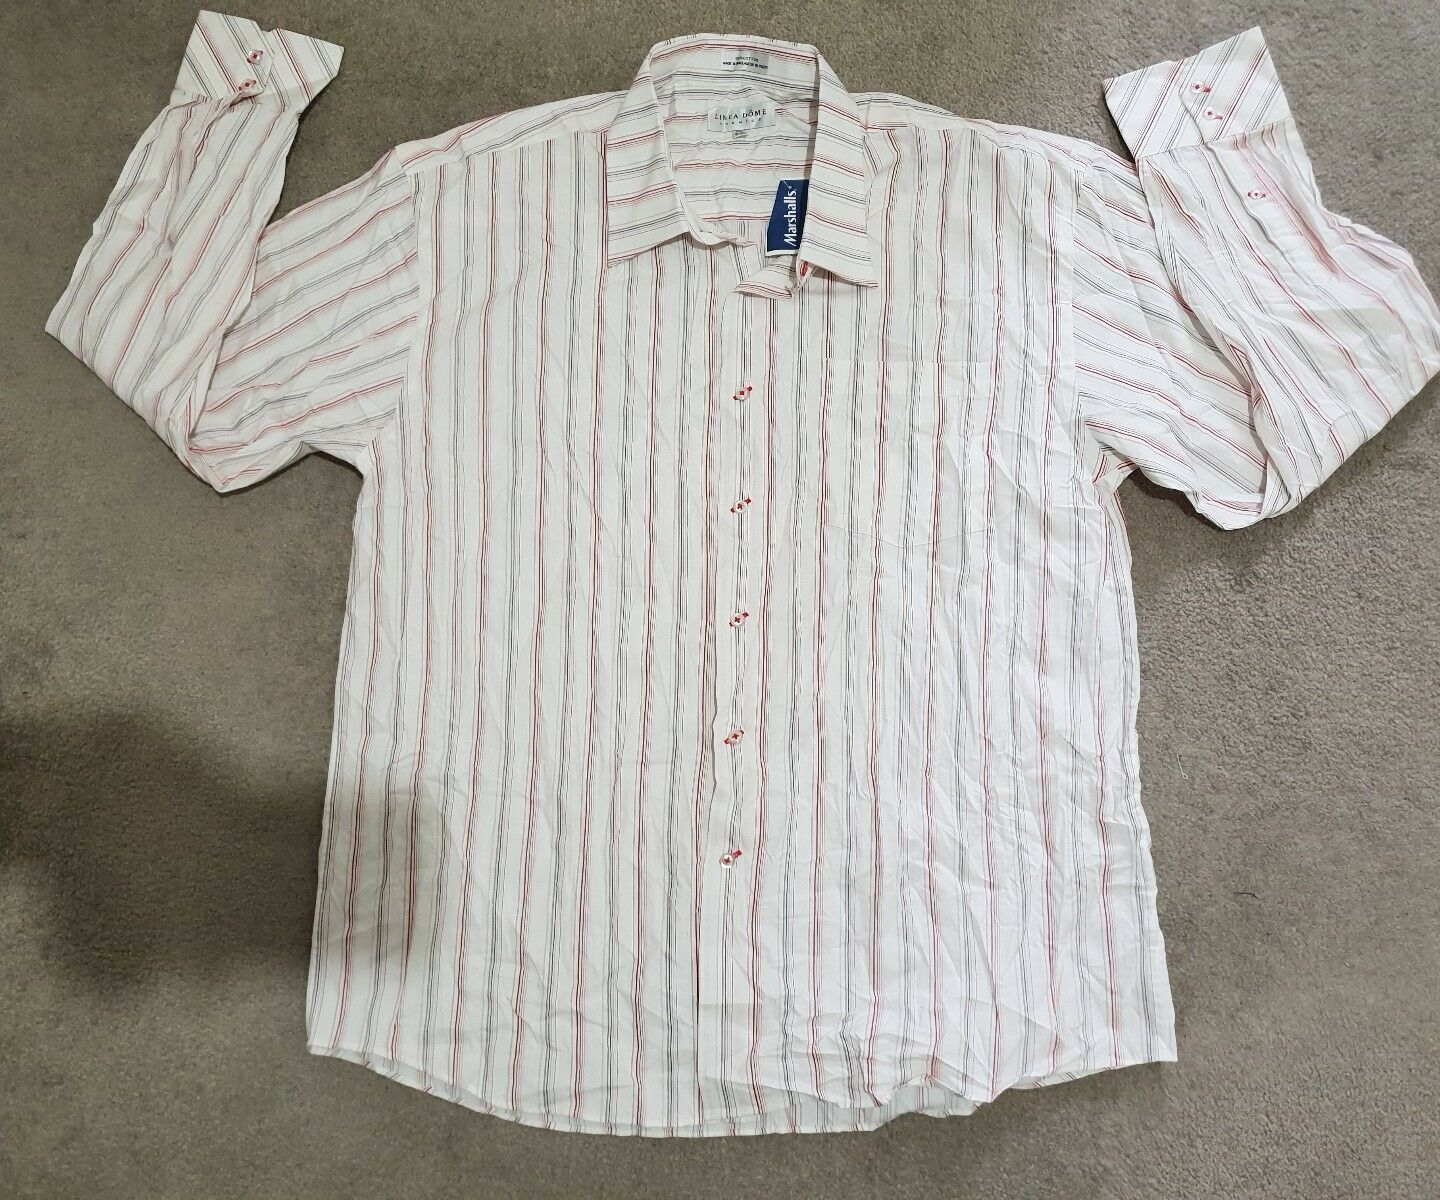 LINEA DOME MEN'S SHIRT SIZE XXL, NEW WITH STORE TAG.